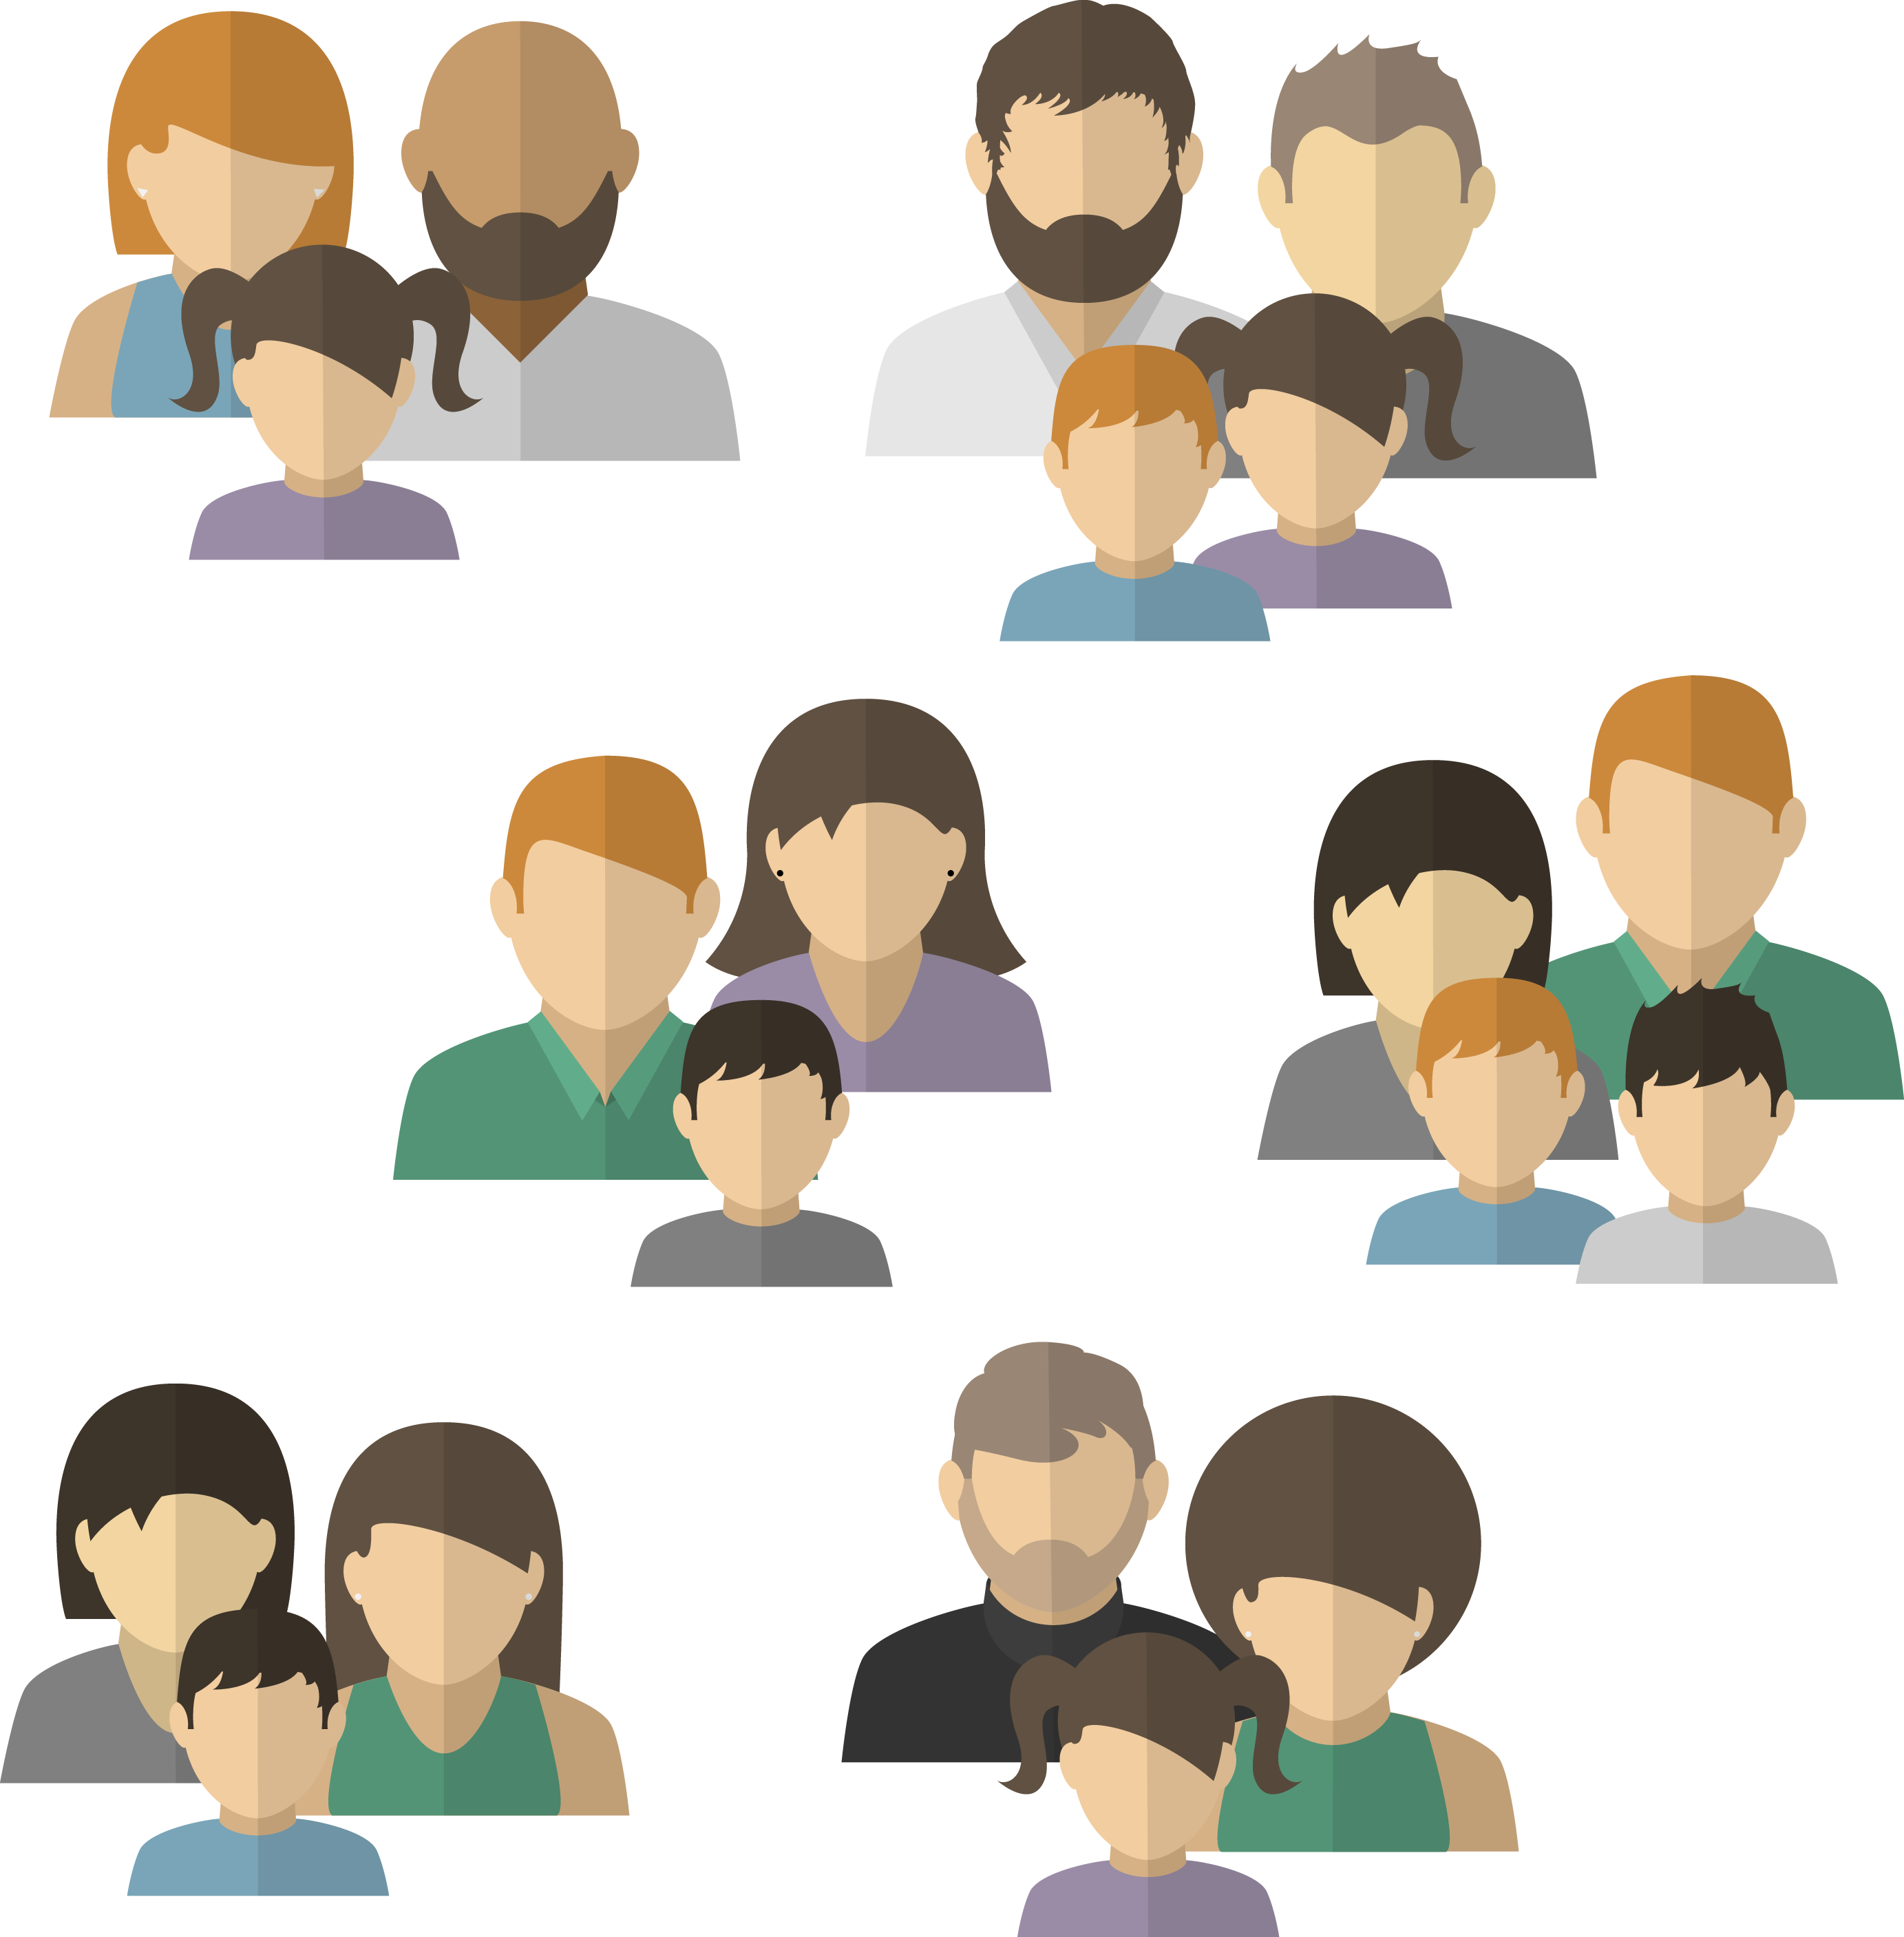 Conversation clipart family conversation. Avatar child members of